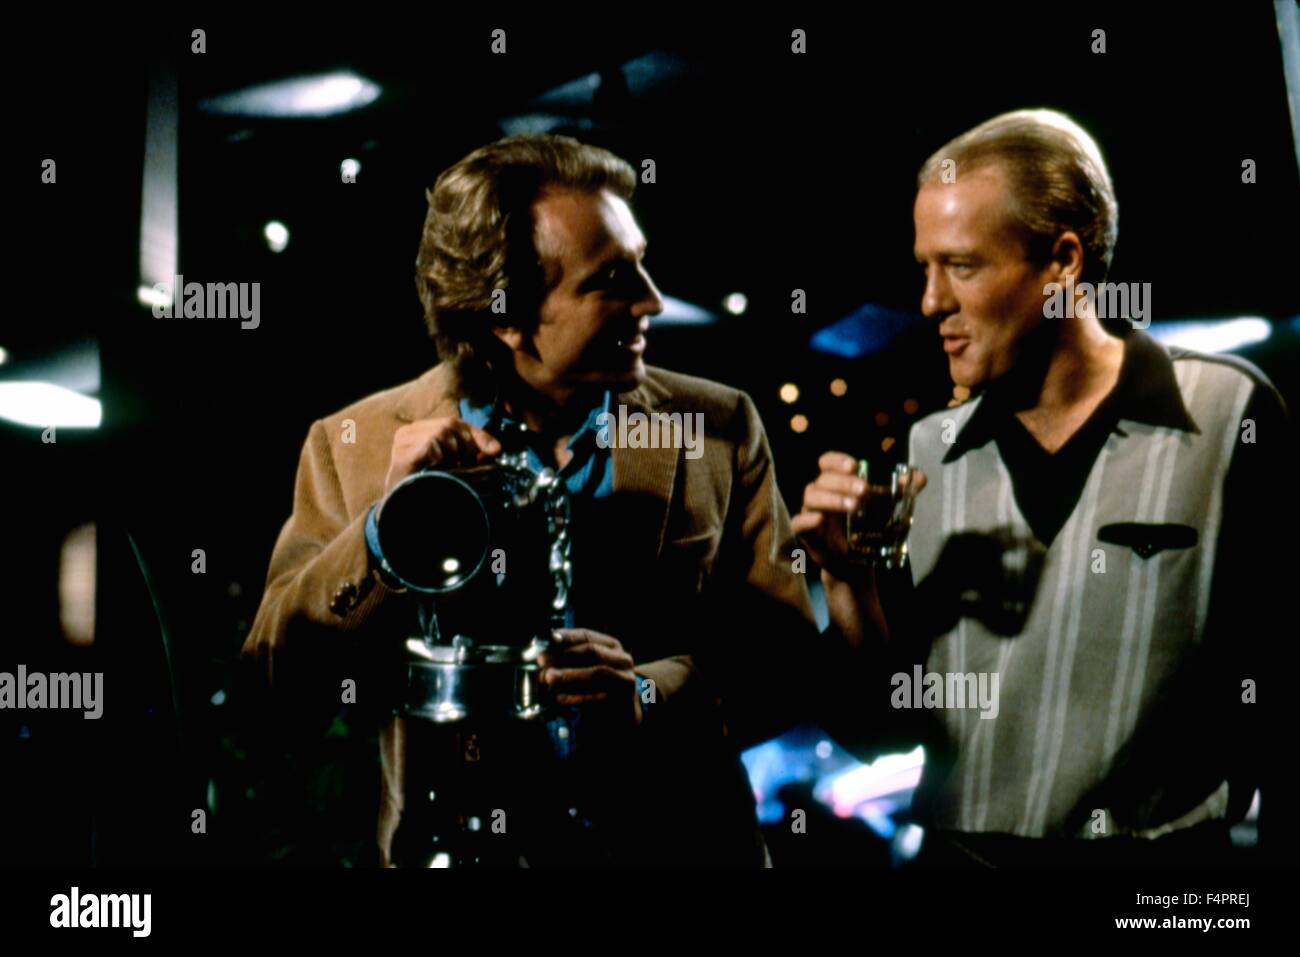 Craig Wasson and Gregg Henry / Body Double / 1984 directed by Brian De Palma [Columbia Pictures] - Stock Image